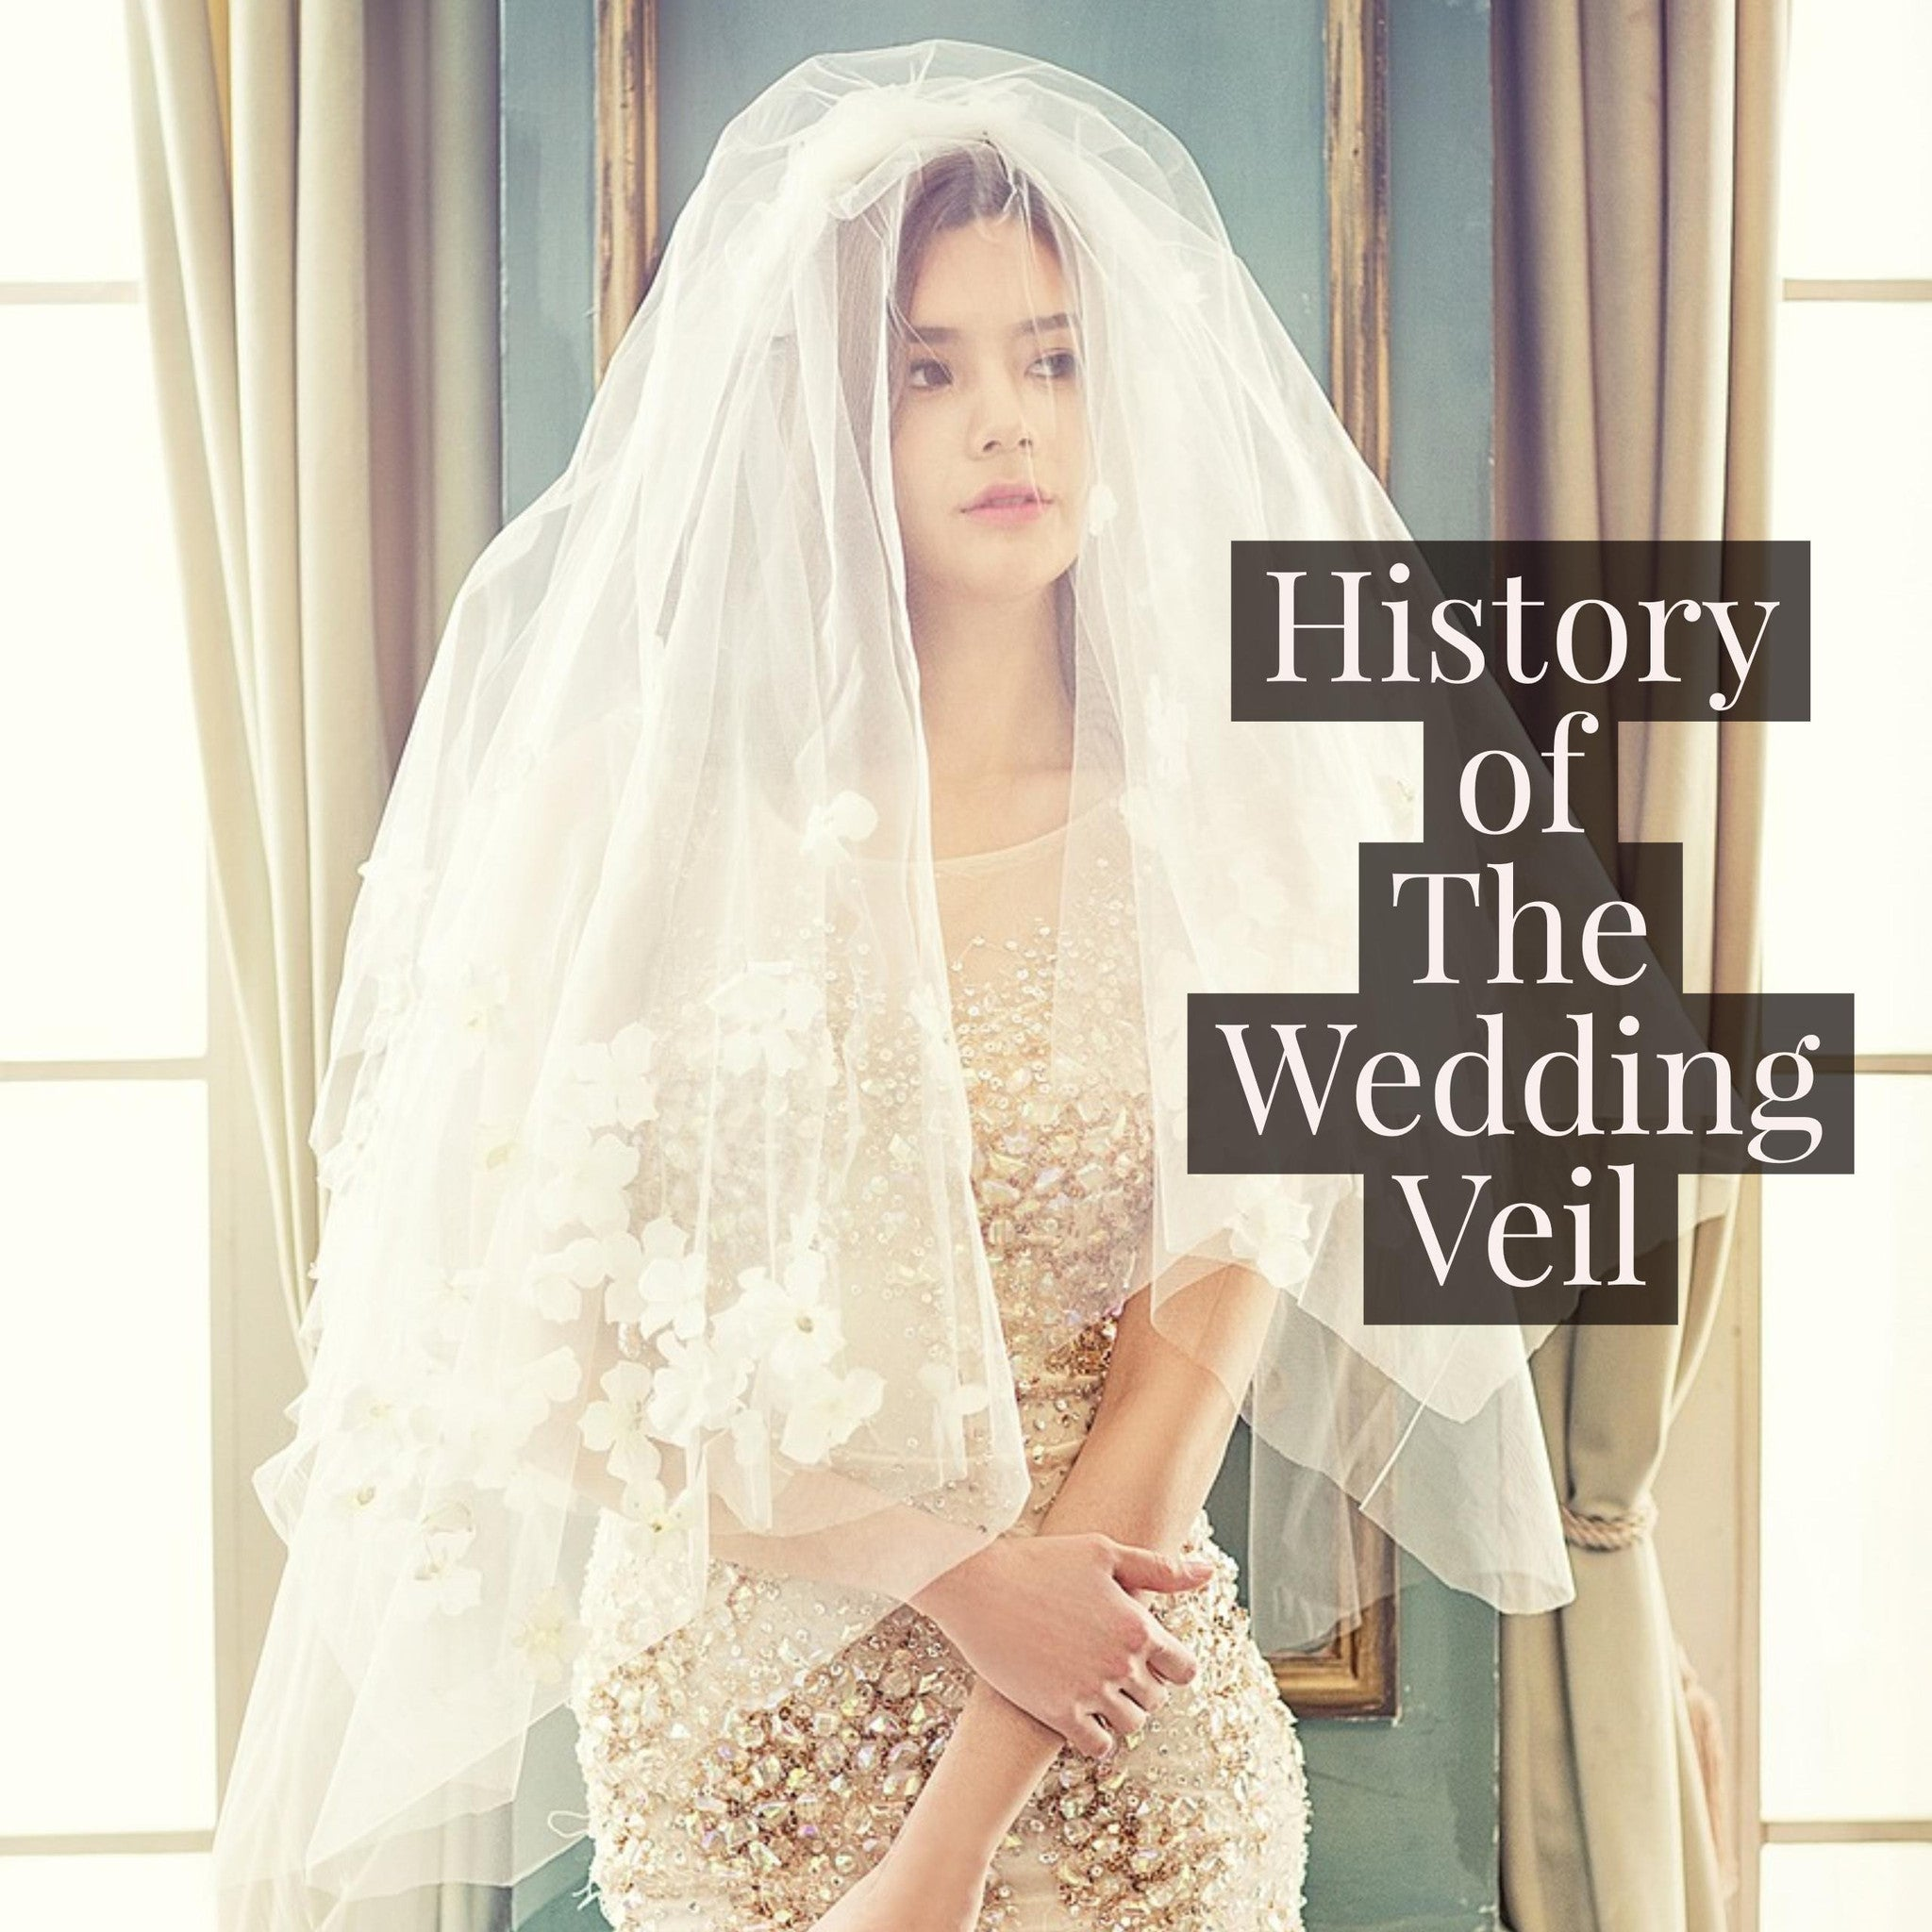 History of the Wedding Veil